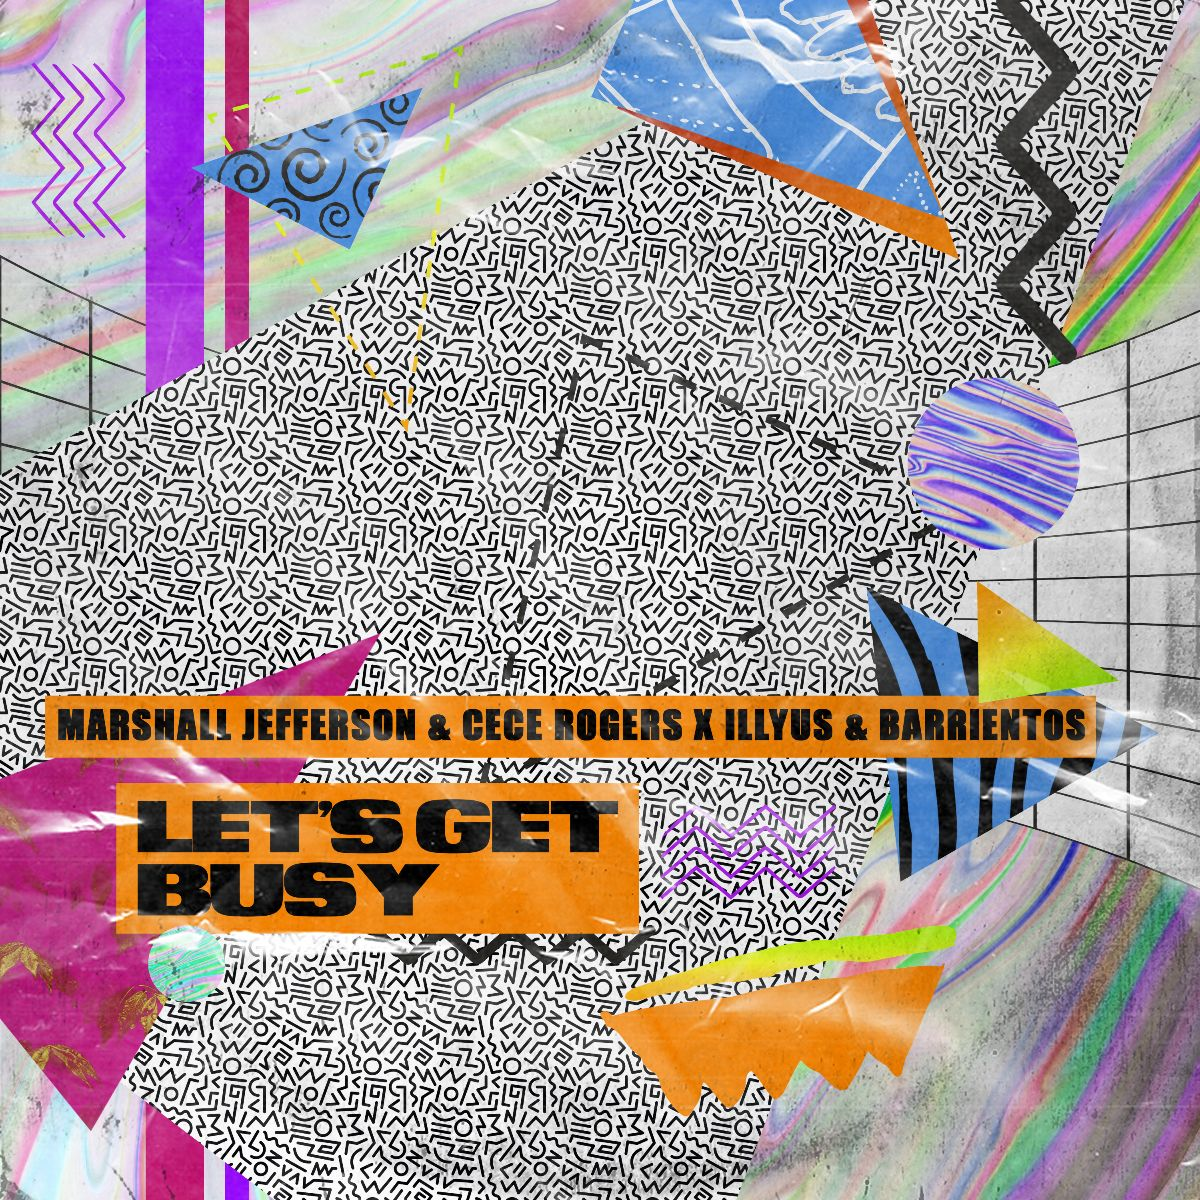 Marshall Jefferson, CeCe Rogers x Illyus & Barrientos 'Let's Get Busy'